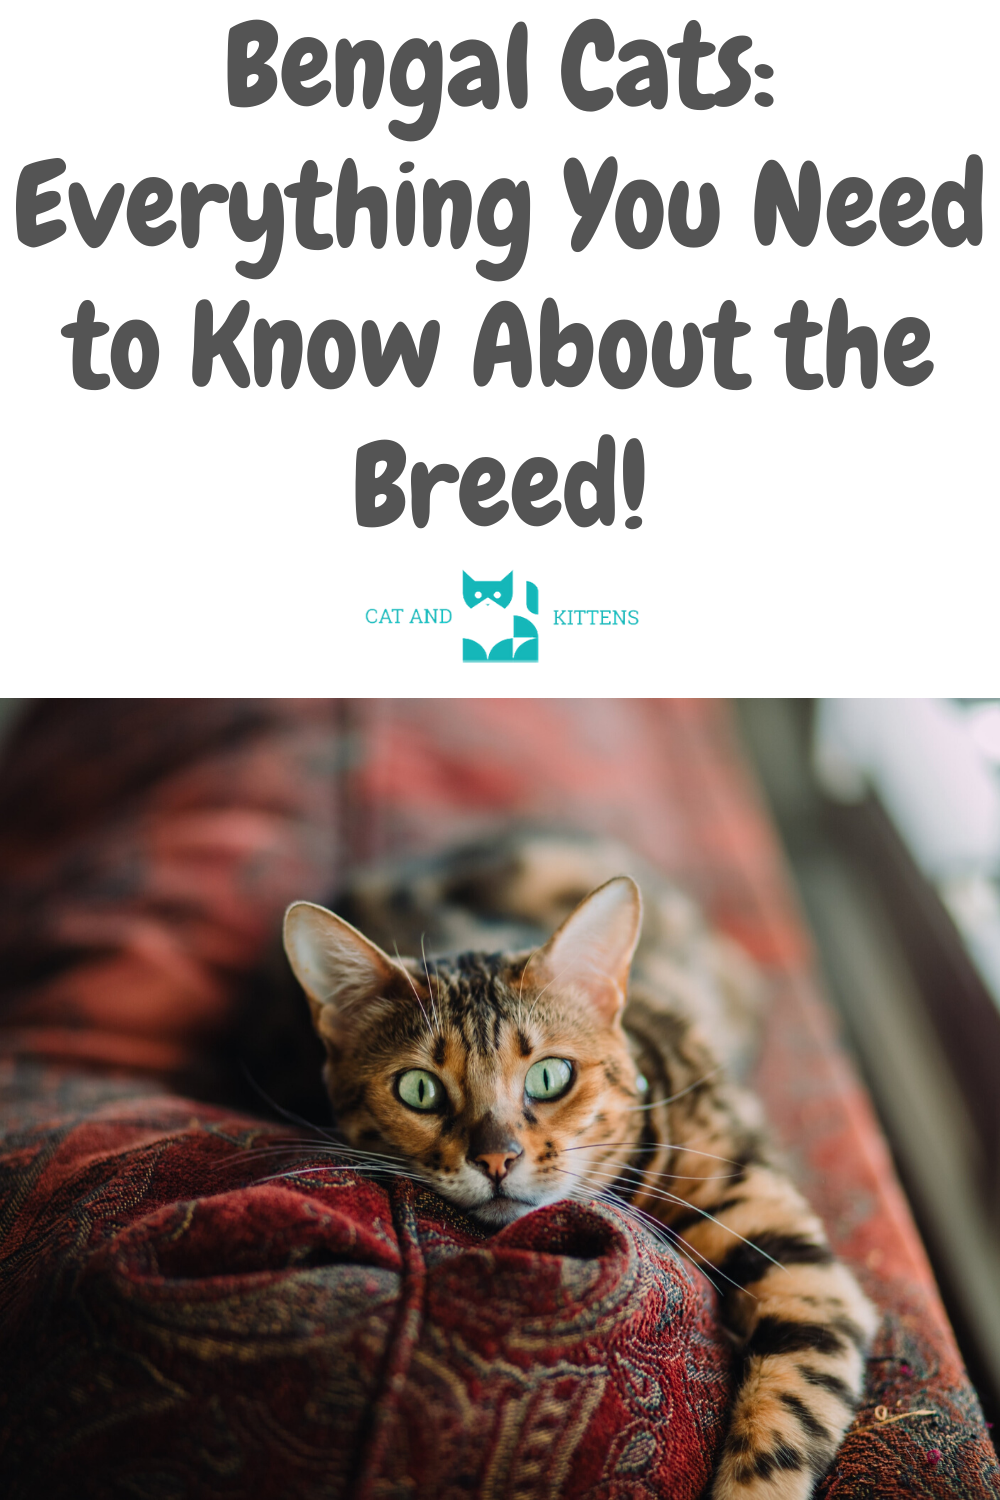 Bengal Cats Everything You Need to Know About the Breed